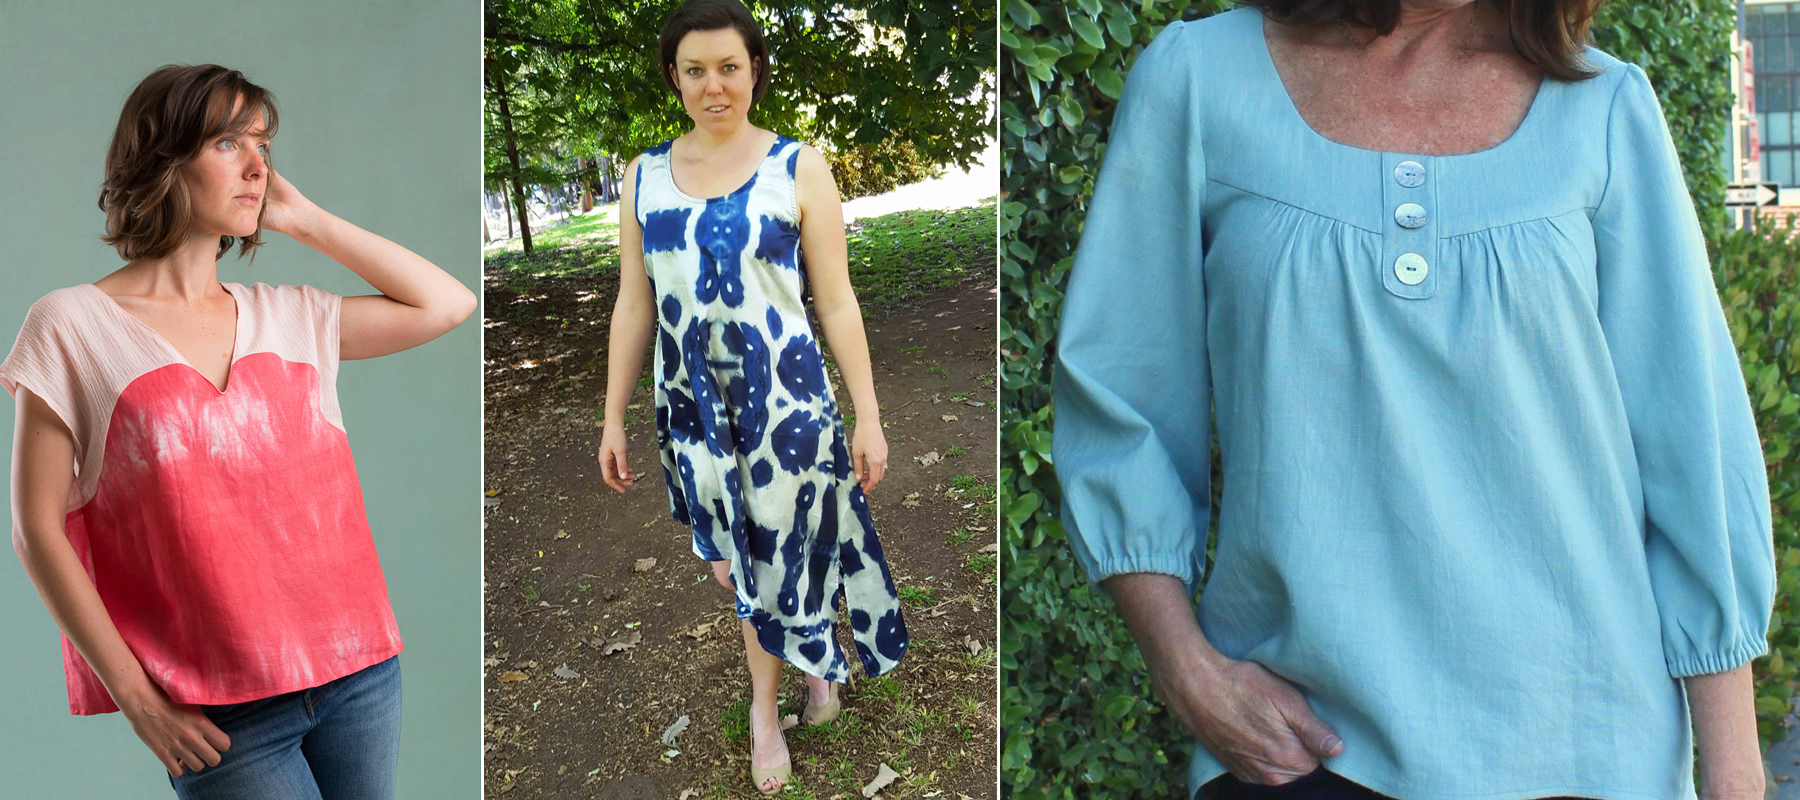 Maternity Style - What to Wear in Summer